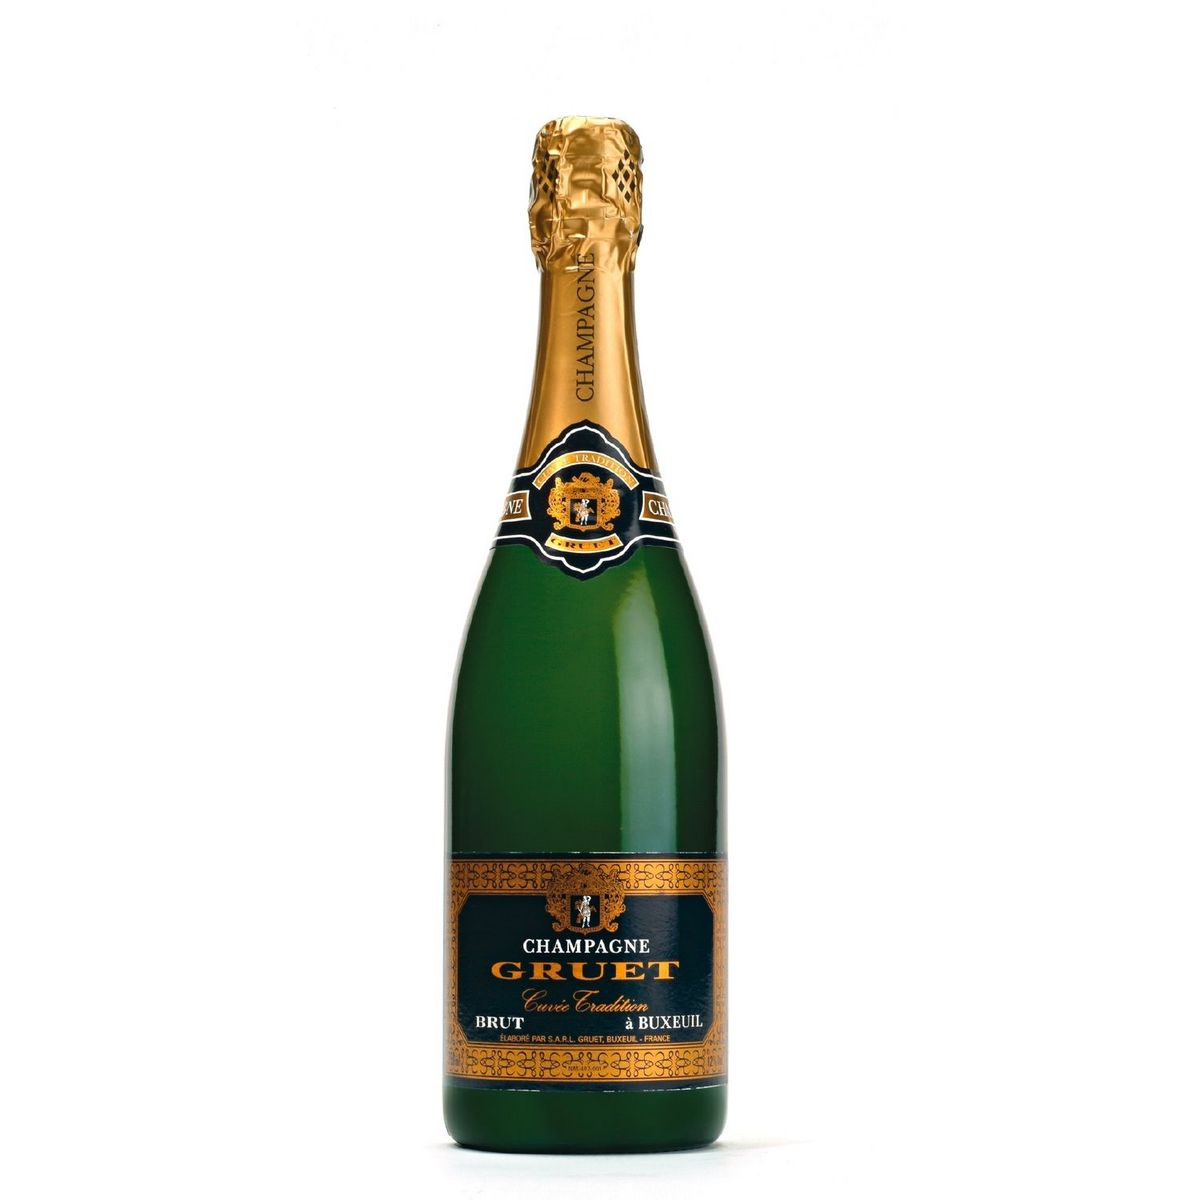 AOP Champagne brut tradition